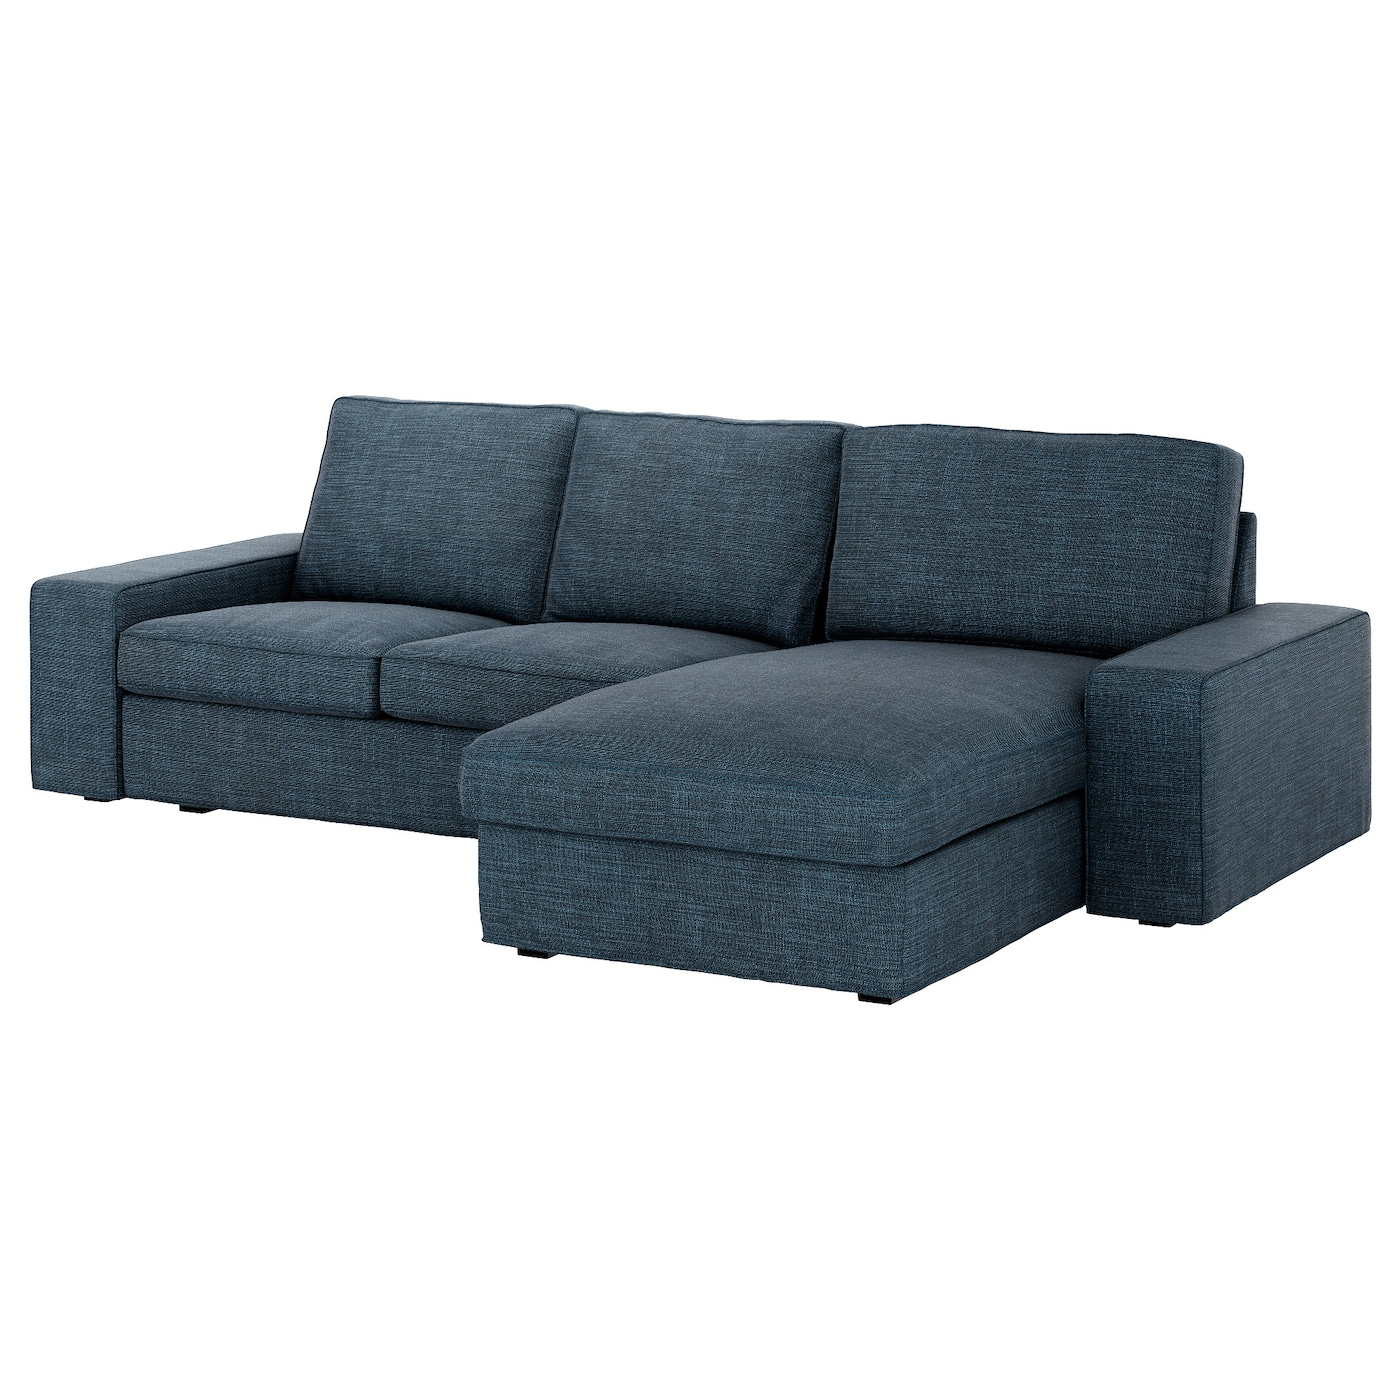 Kivik two seat sofa and chaise longue hillared dark blue for Sofa jugendzimmer ikea